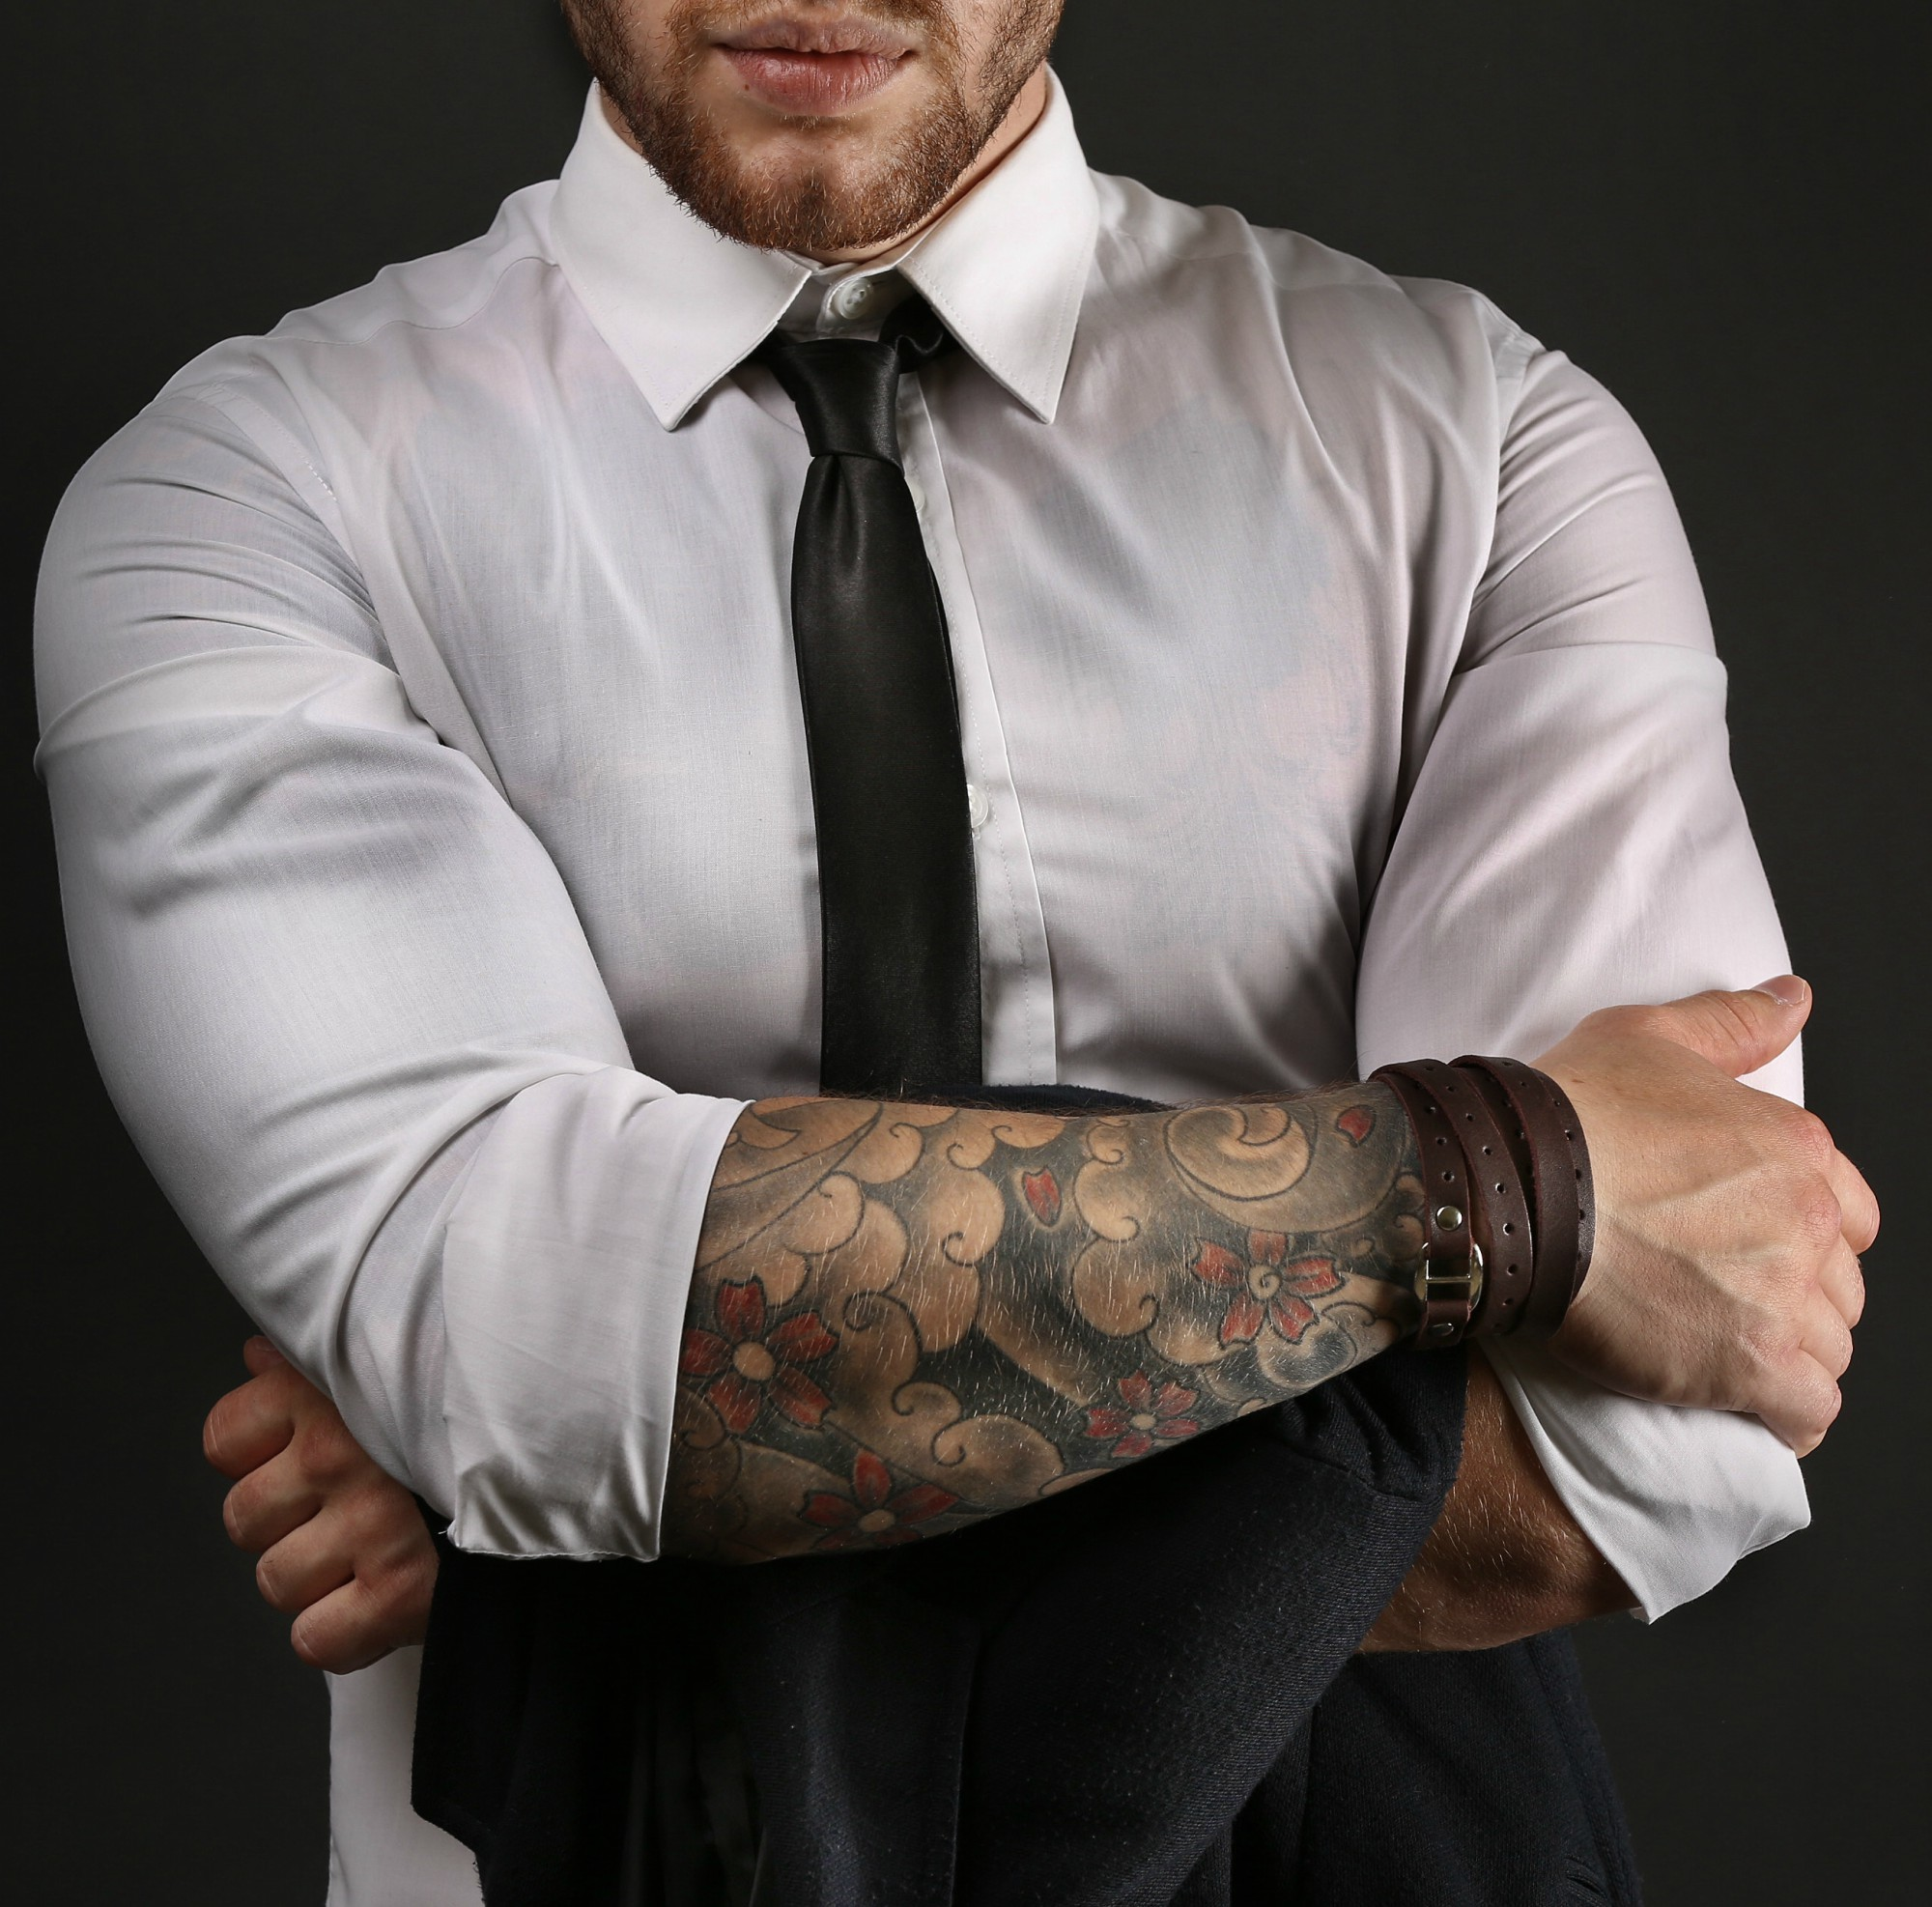 Tattooed Freaks in Business Suits